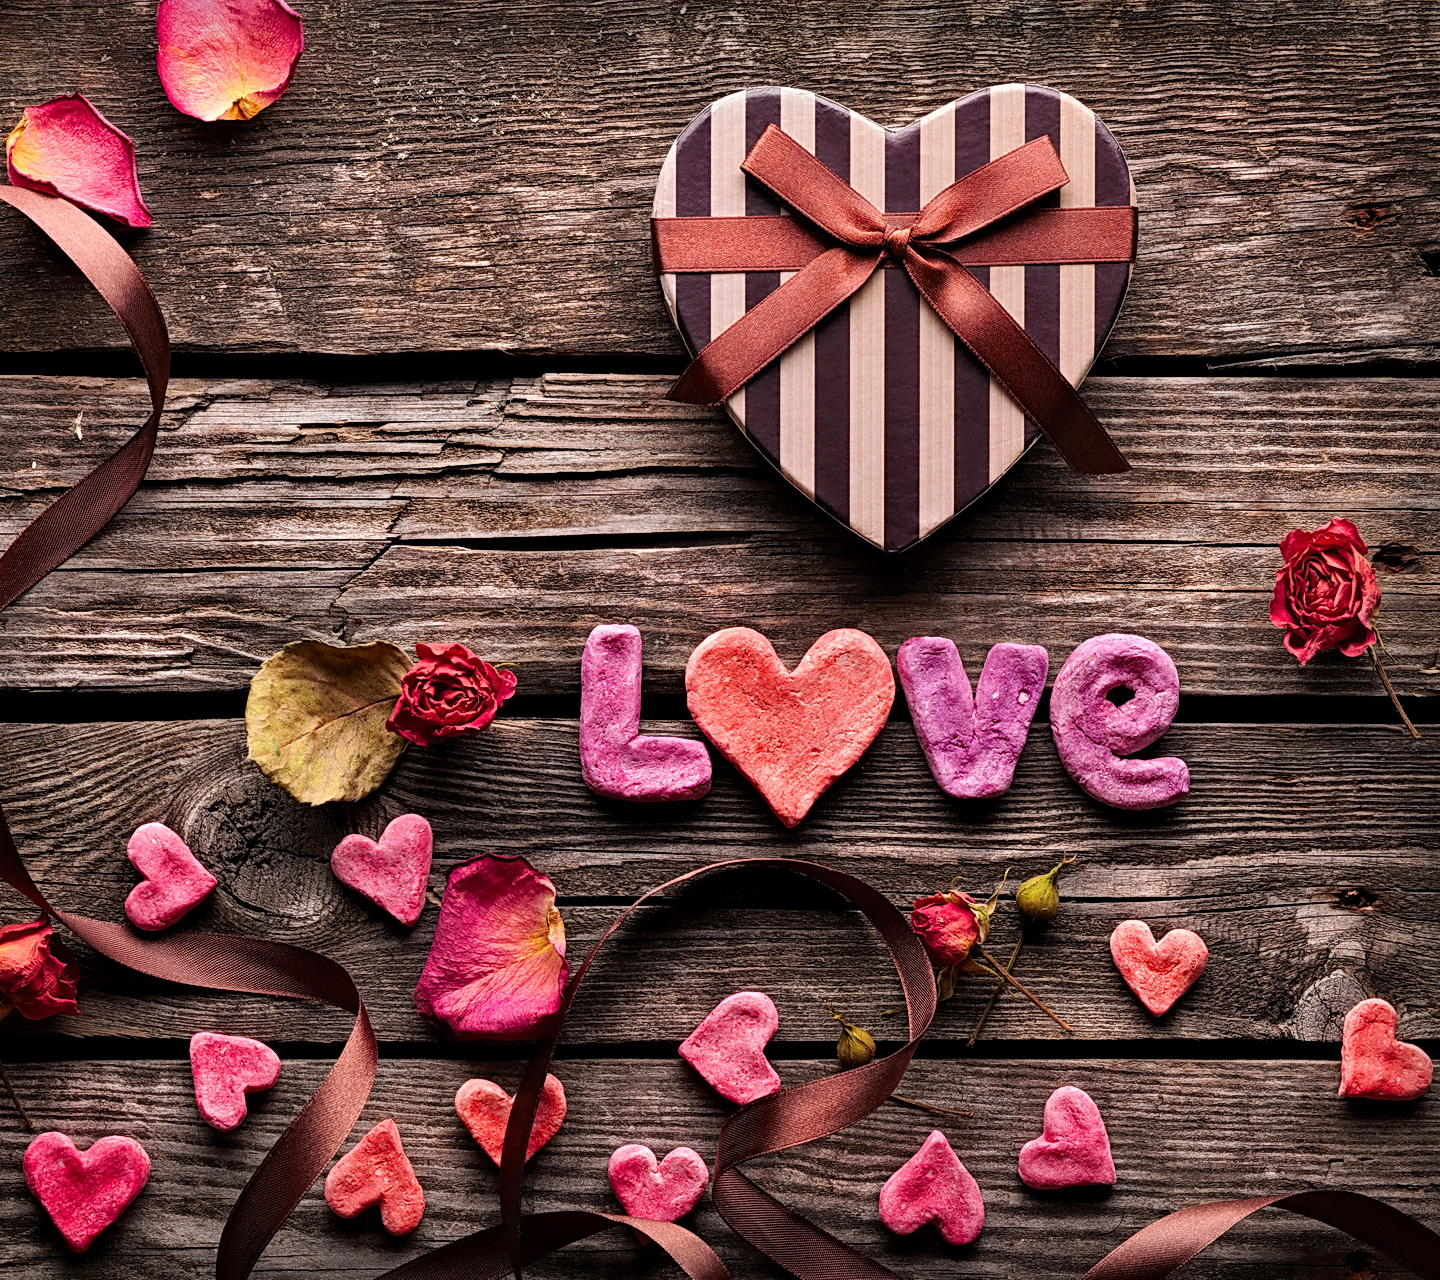 Love Photo Download: Images Of Love Pictures Love Wallpaper